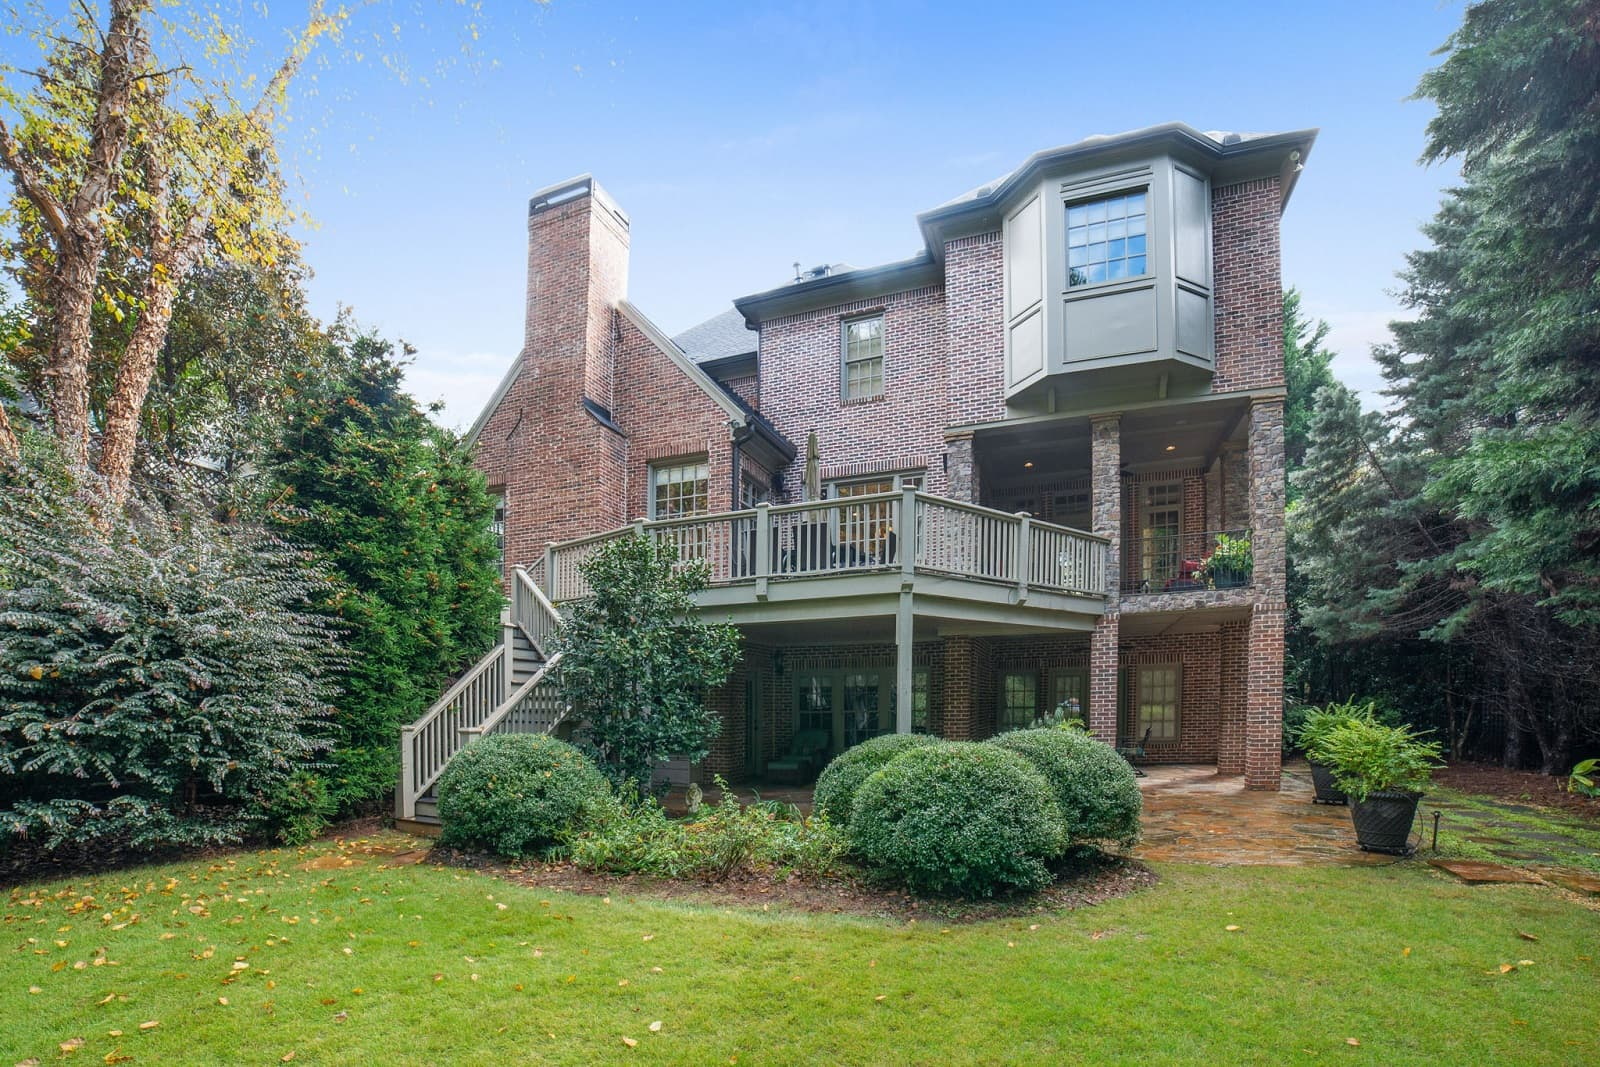 Real Estate Photography in Marietta - GA - USA - Front View